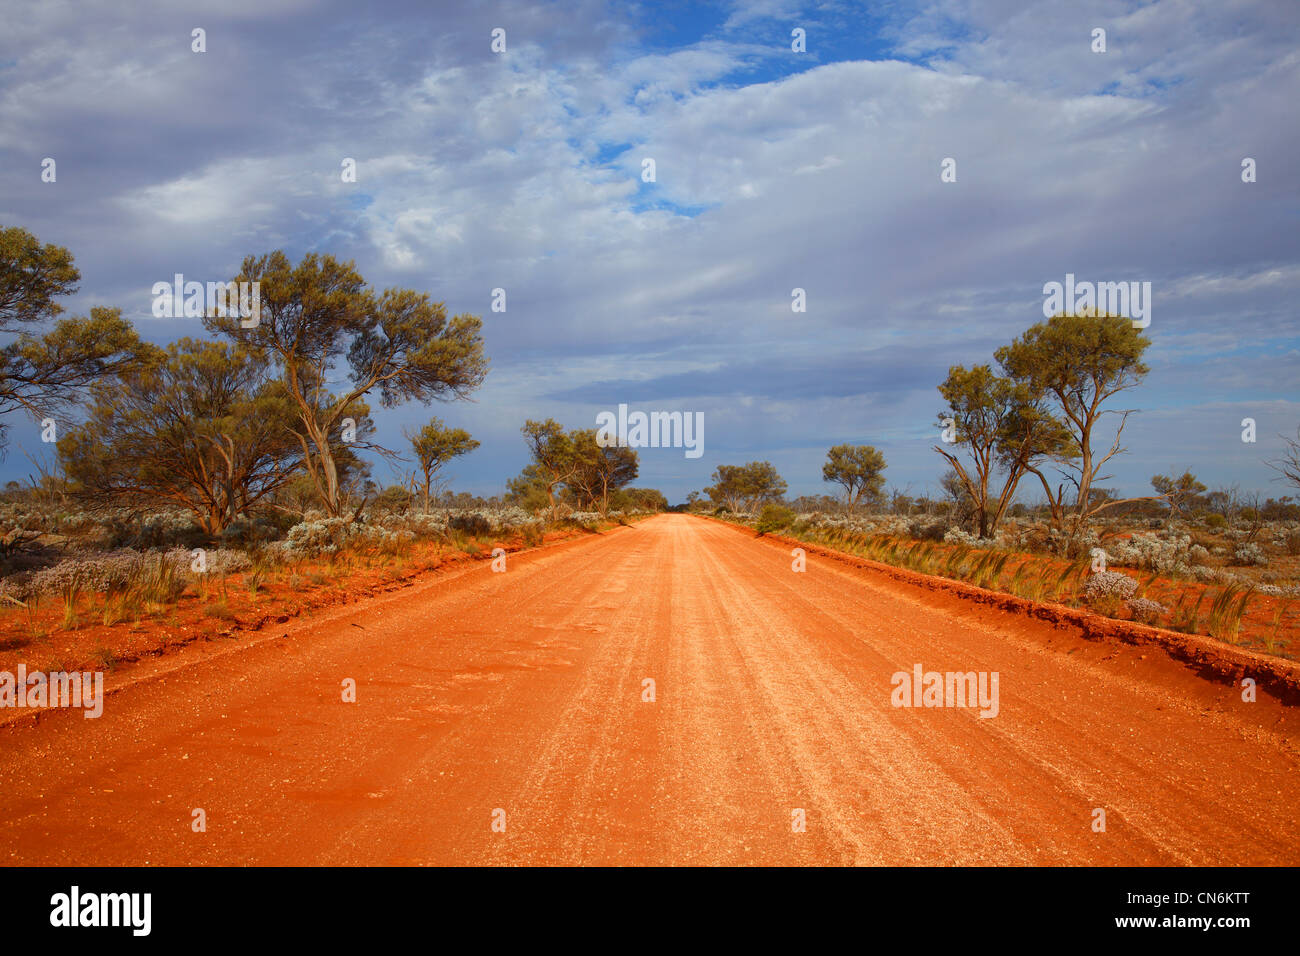 Outback road - Stock Image